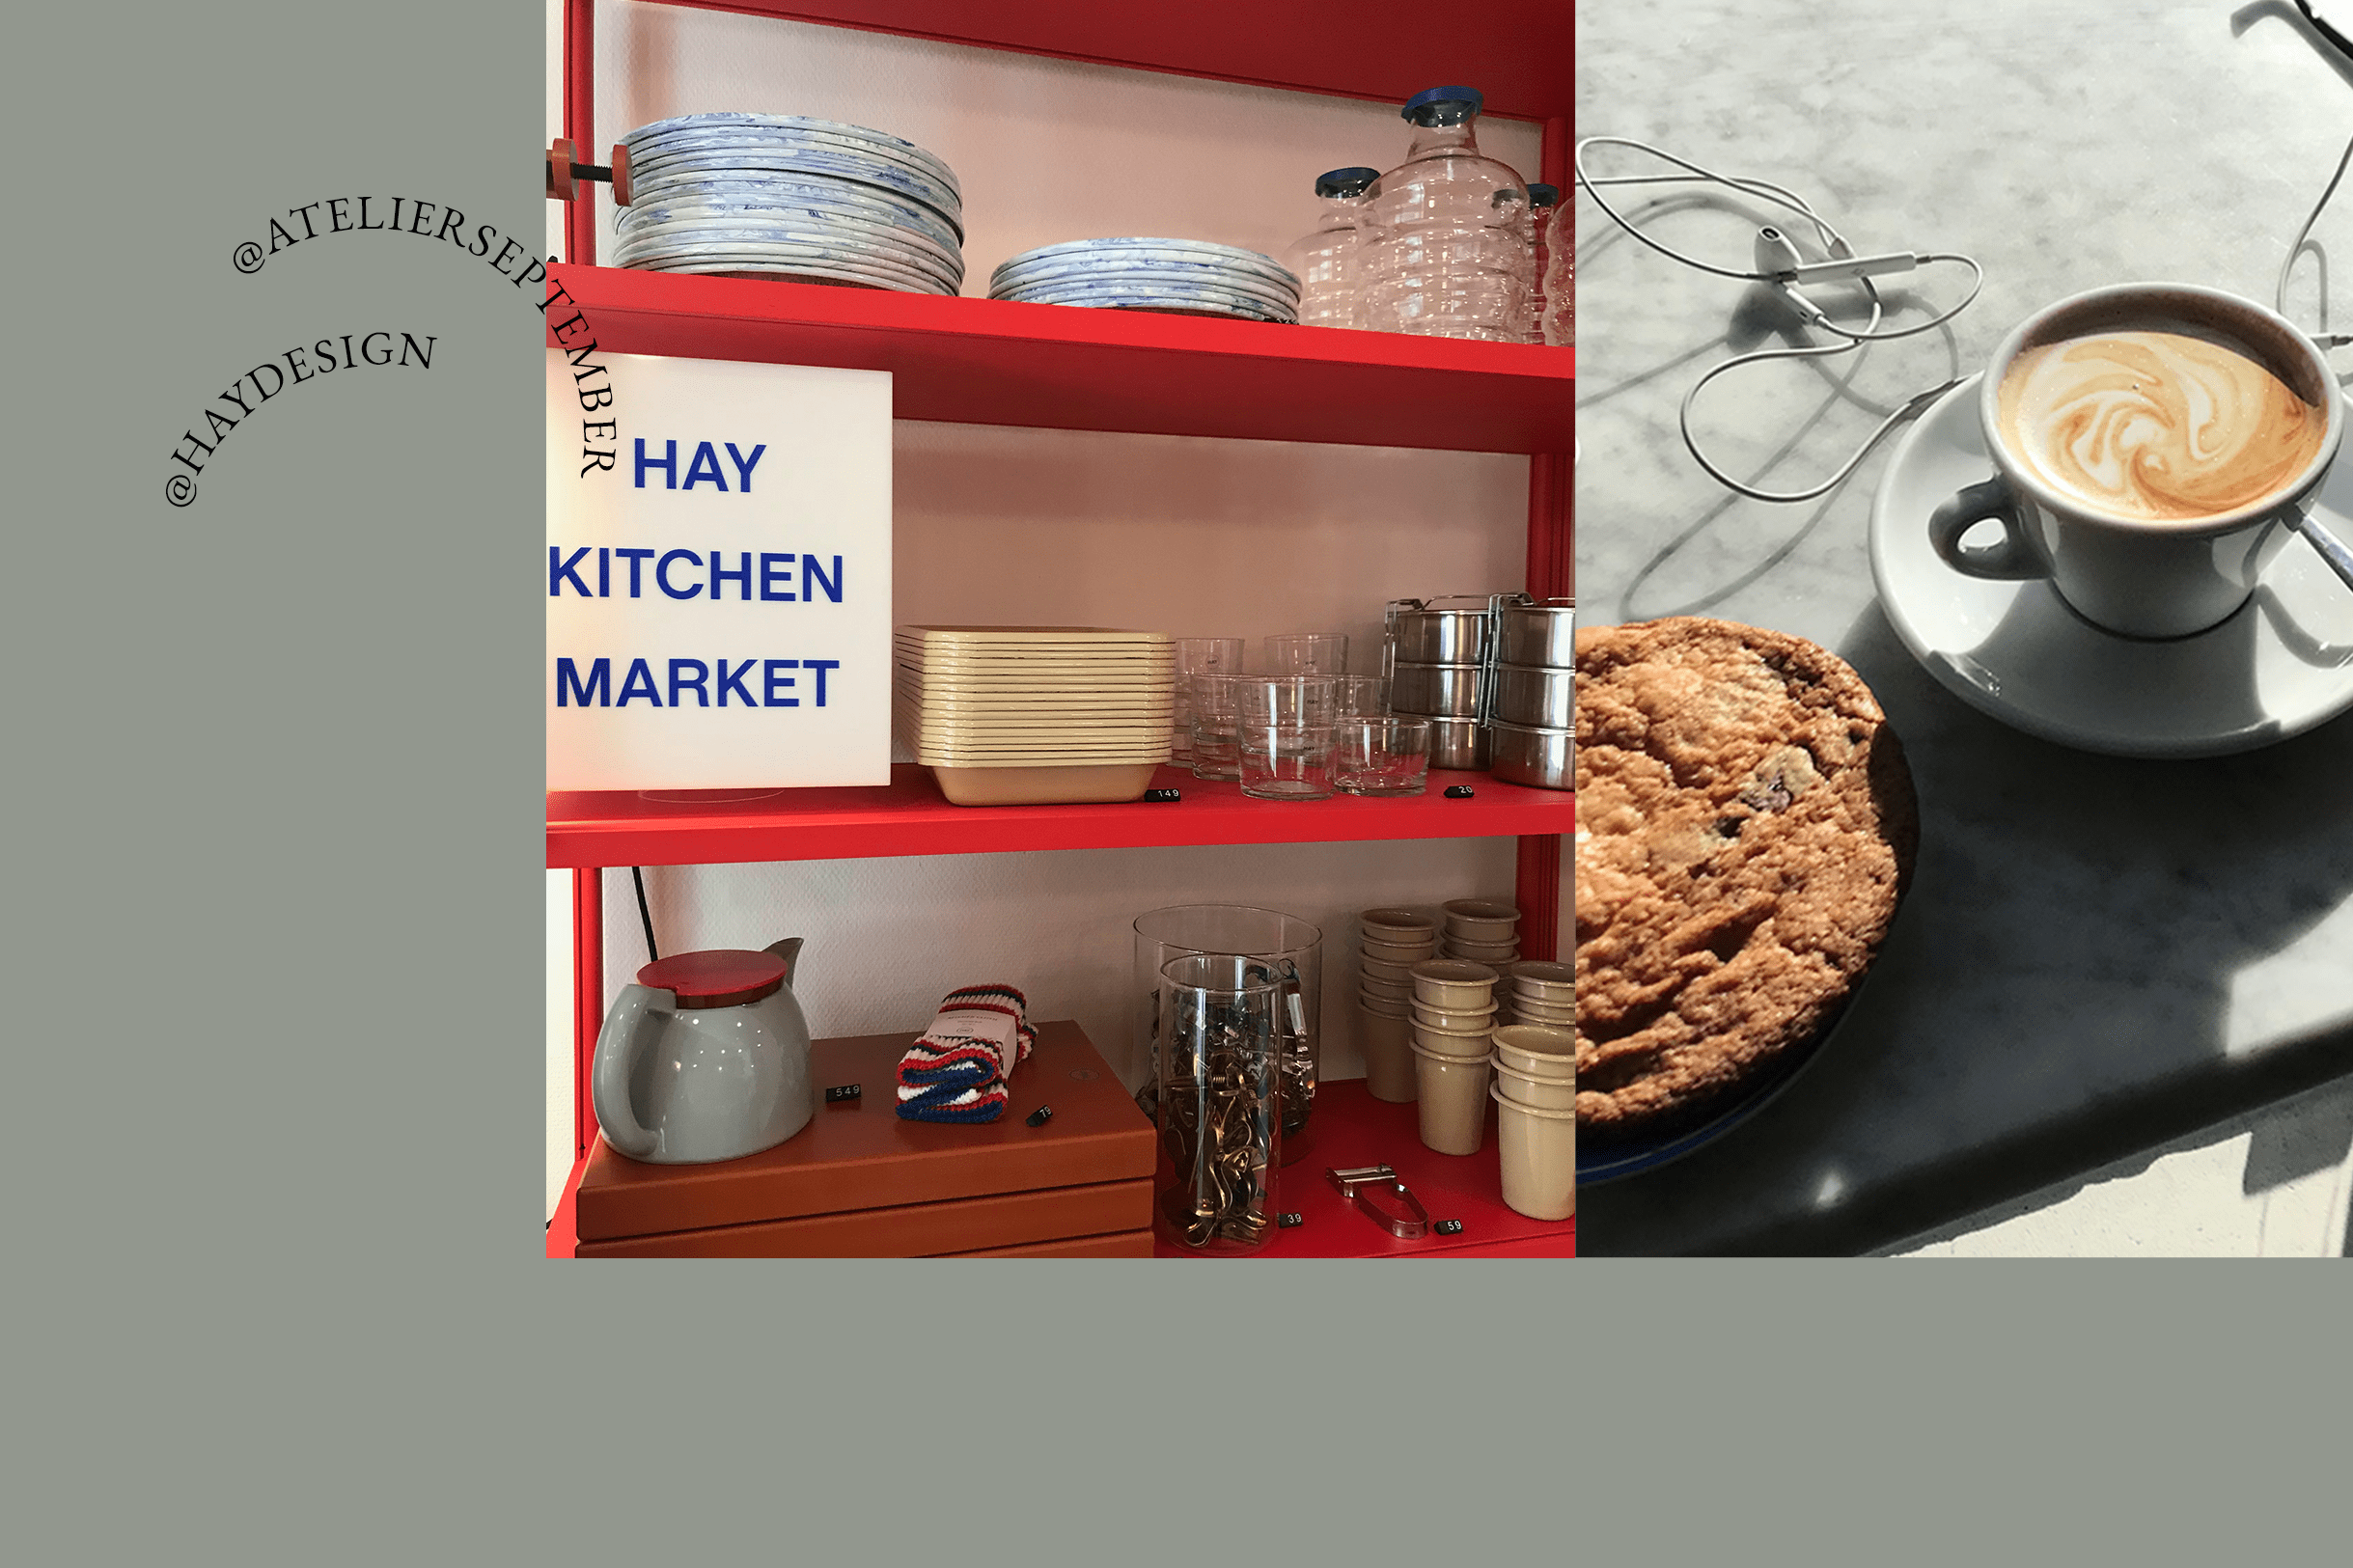 Coffee and cake in Atelier September and Hay Design in Copenhagen